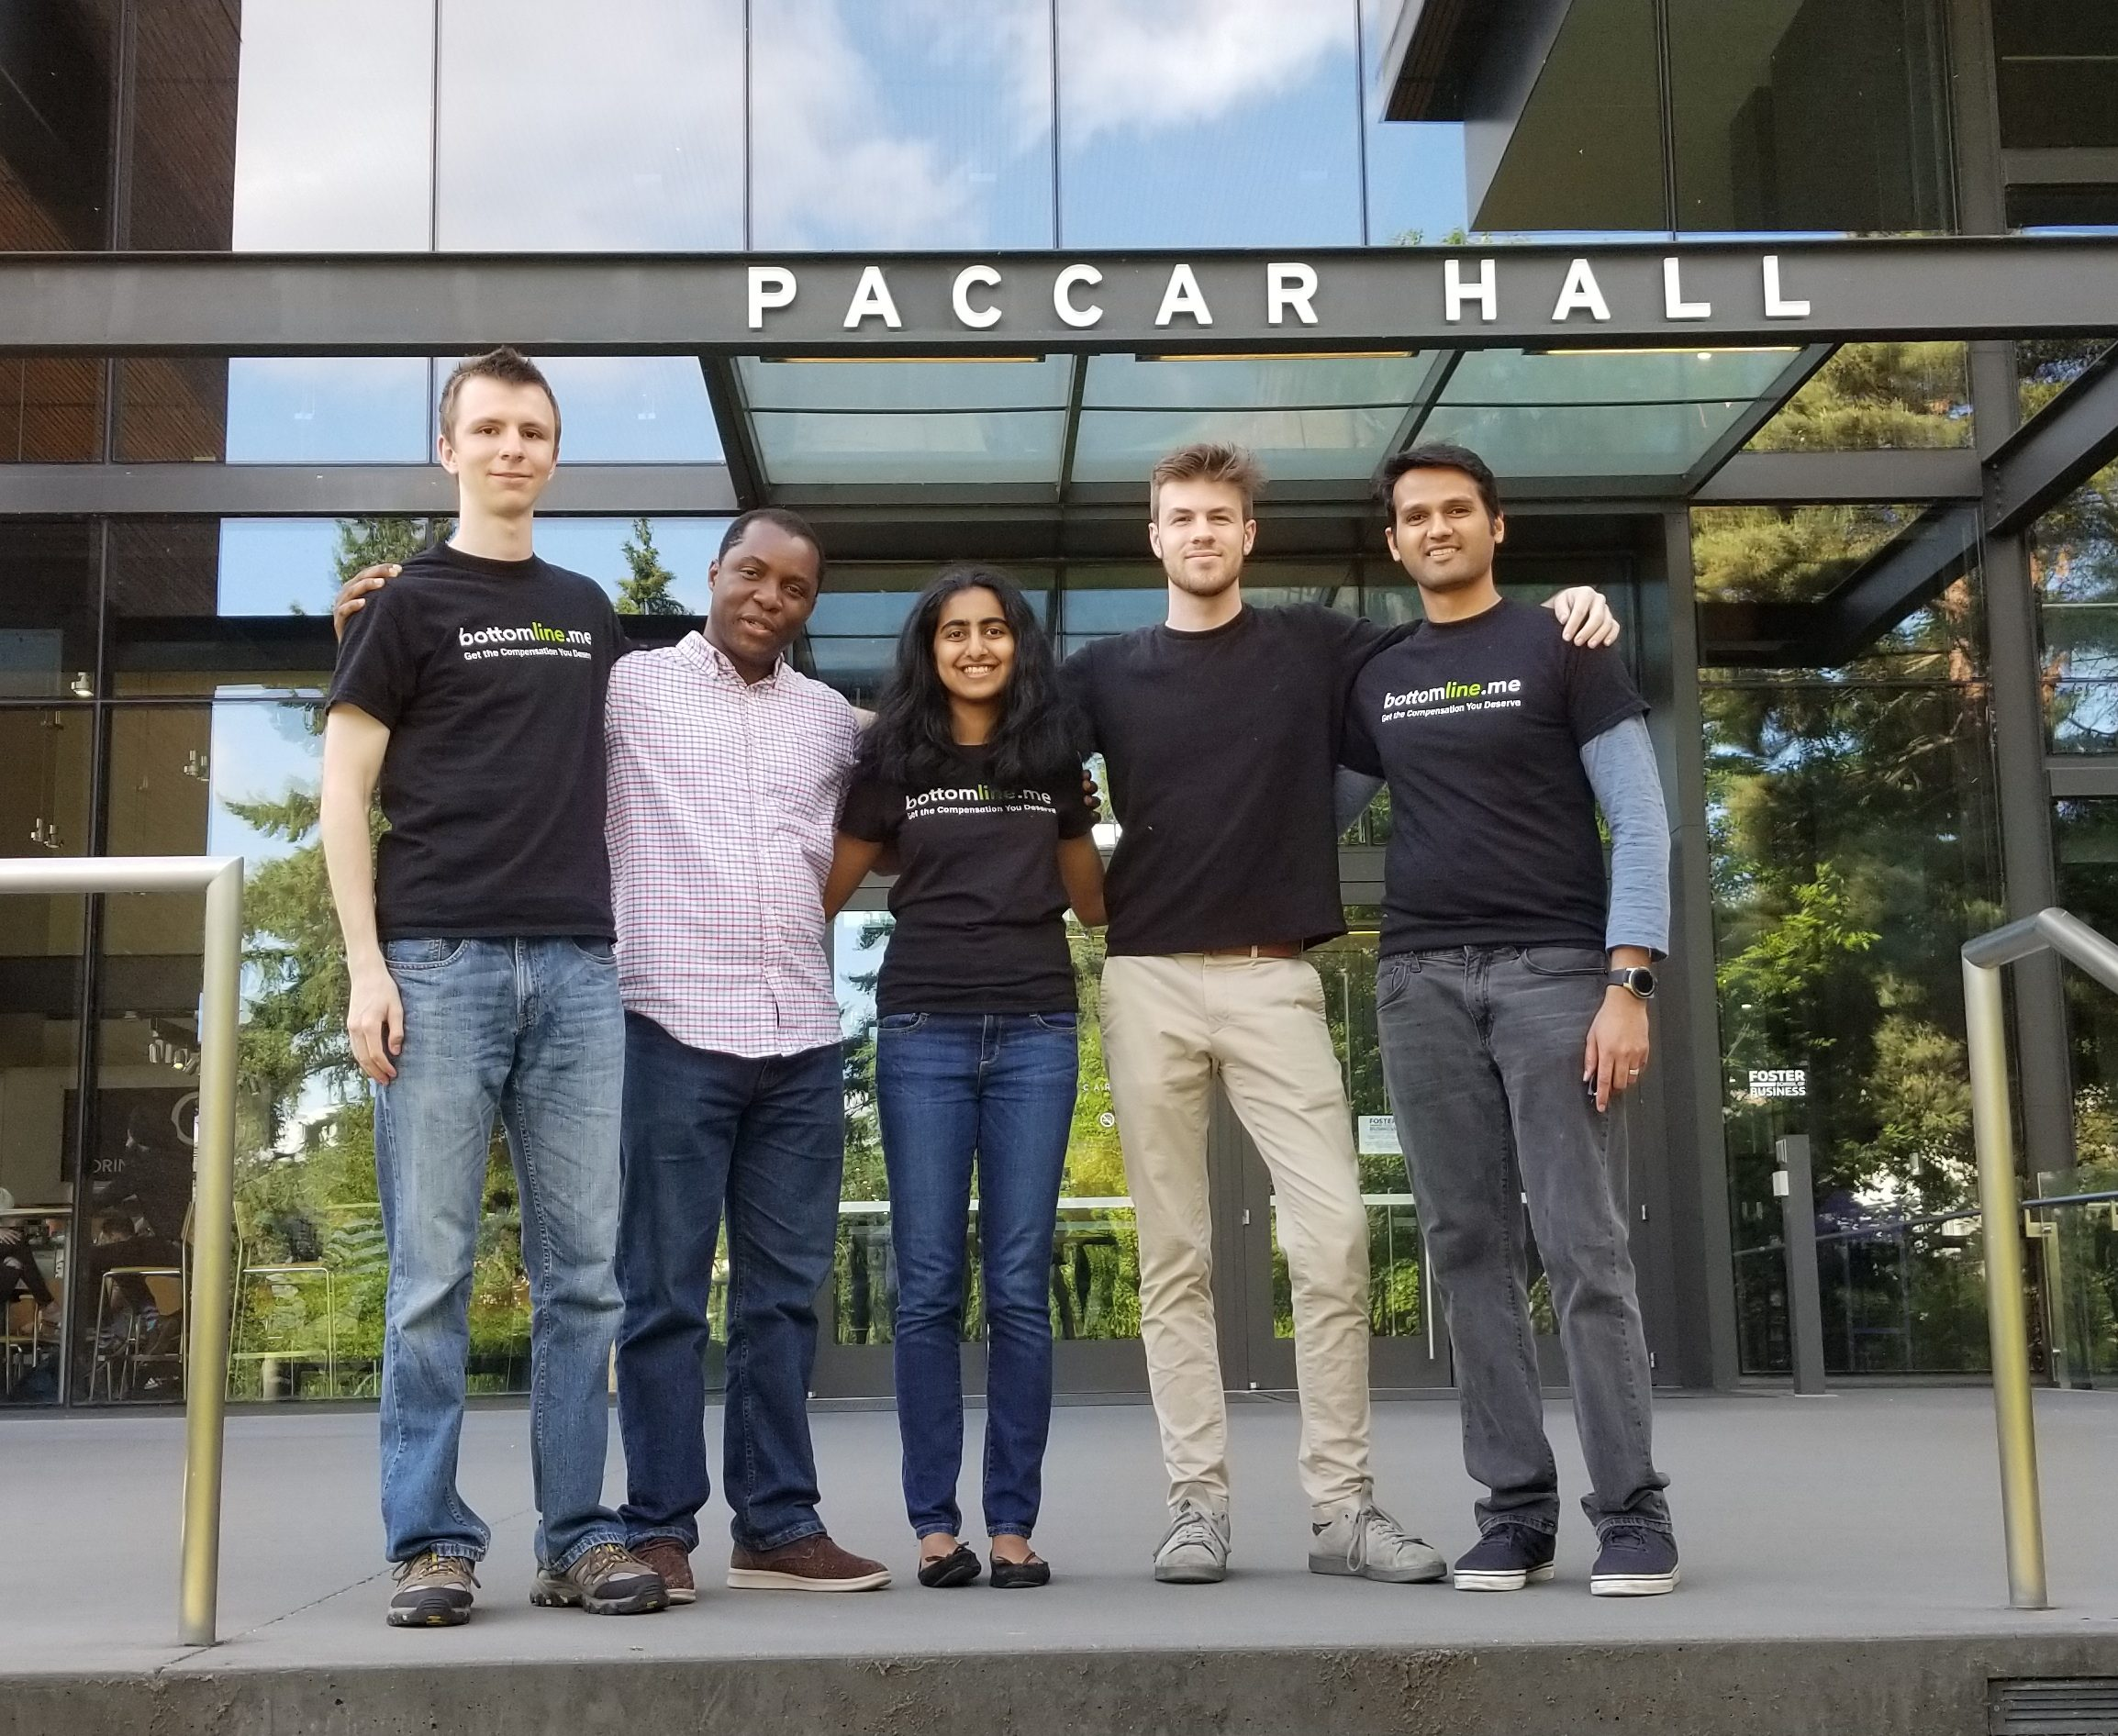 Five smiling students posed in front of Paccar Hall